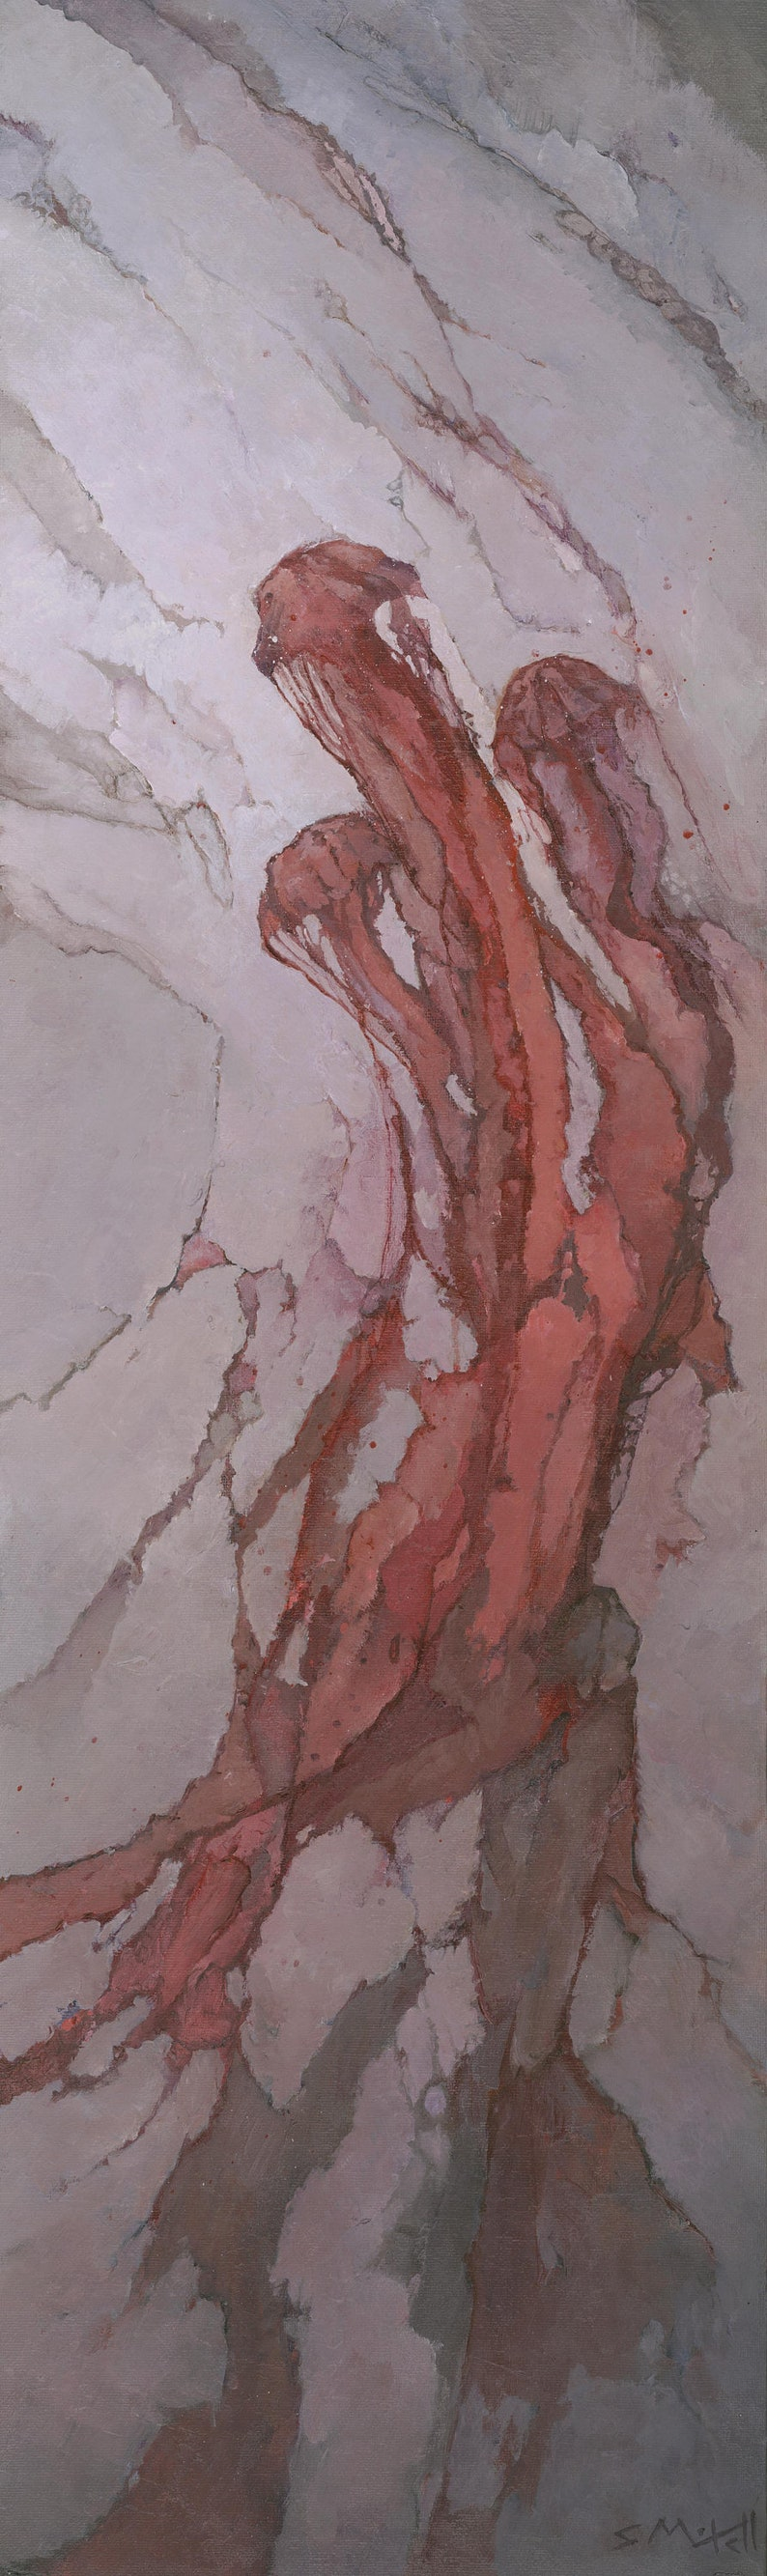 Red Jellyfish Original Painting Abstract Underwater Fluid image 0